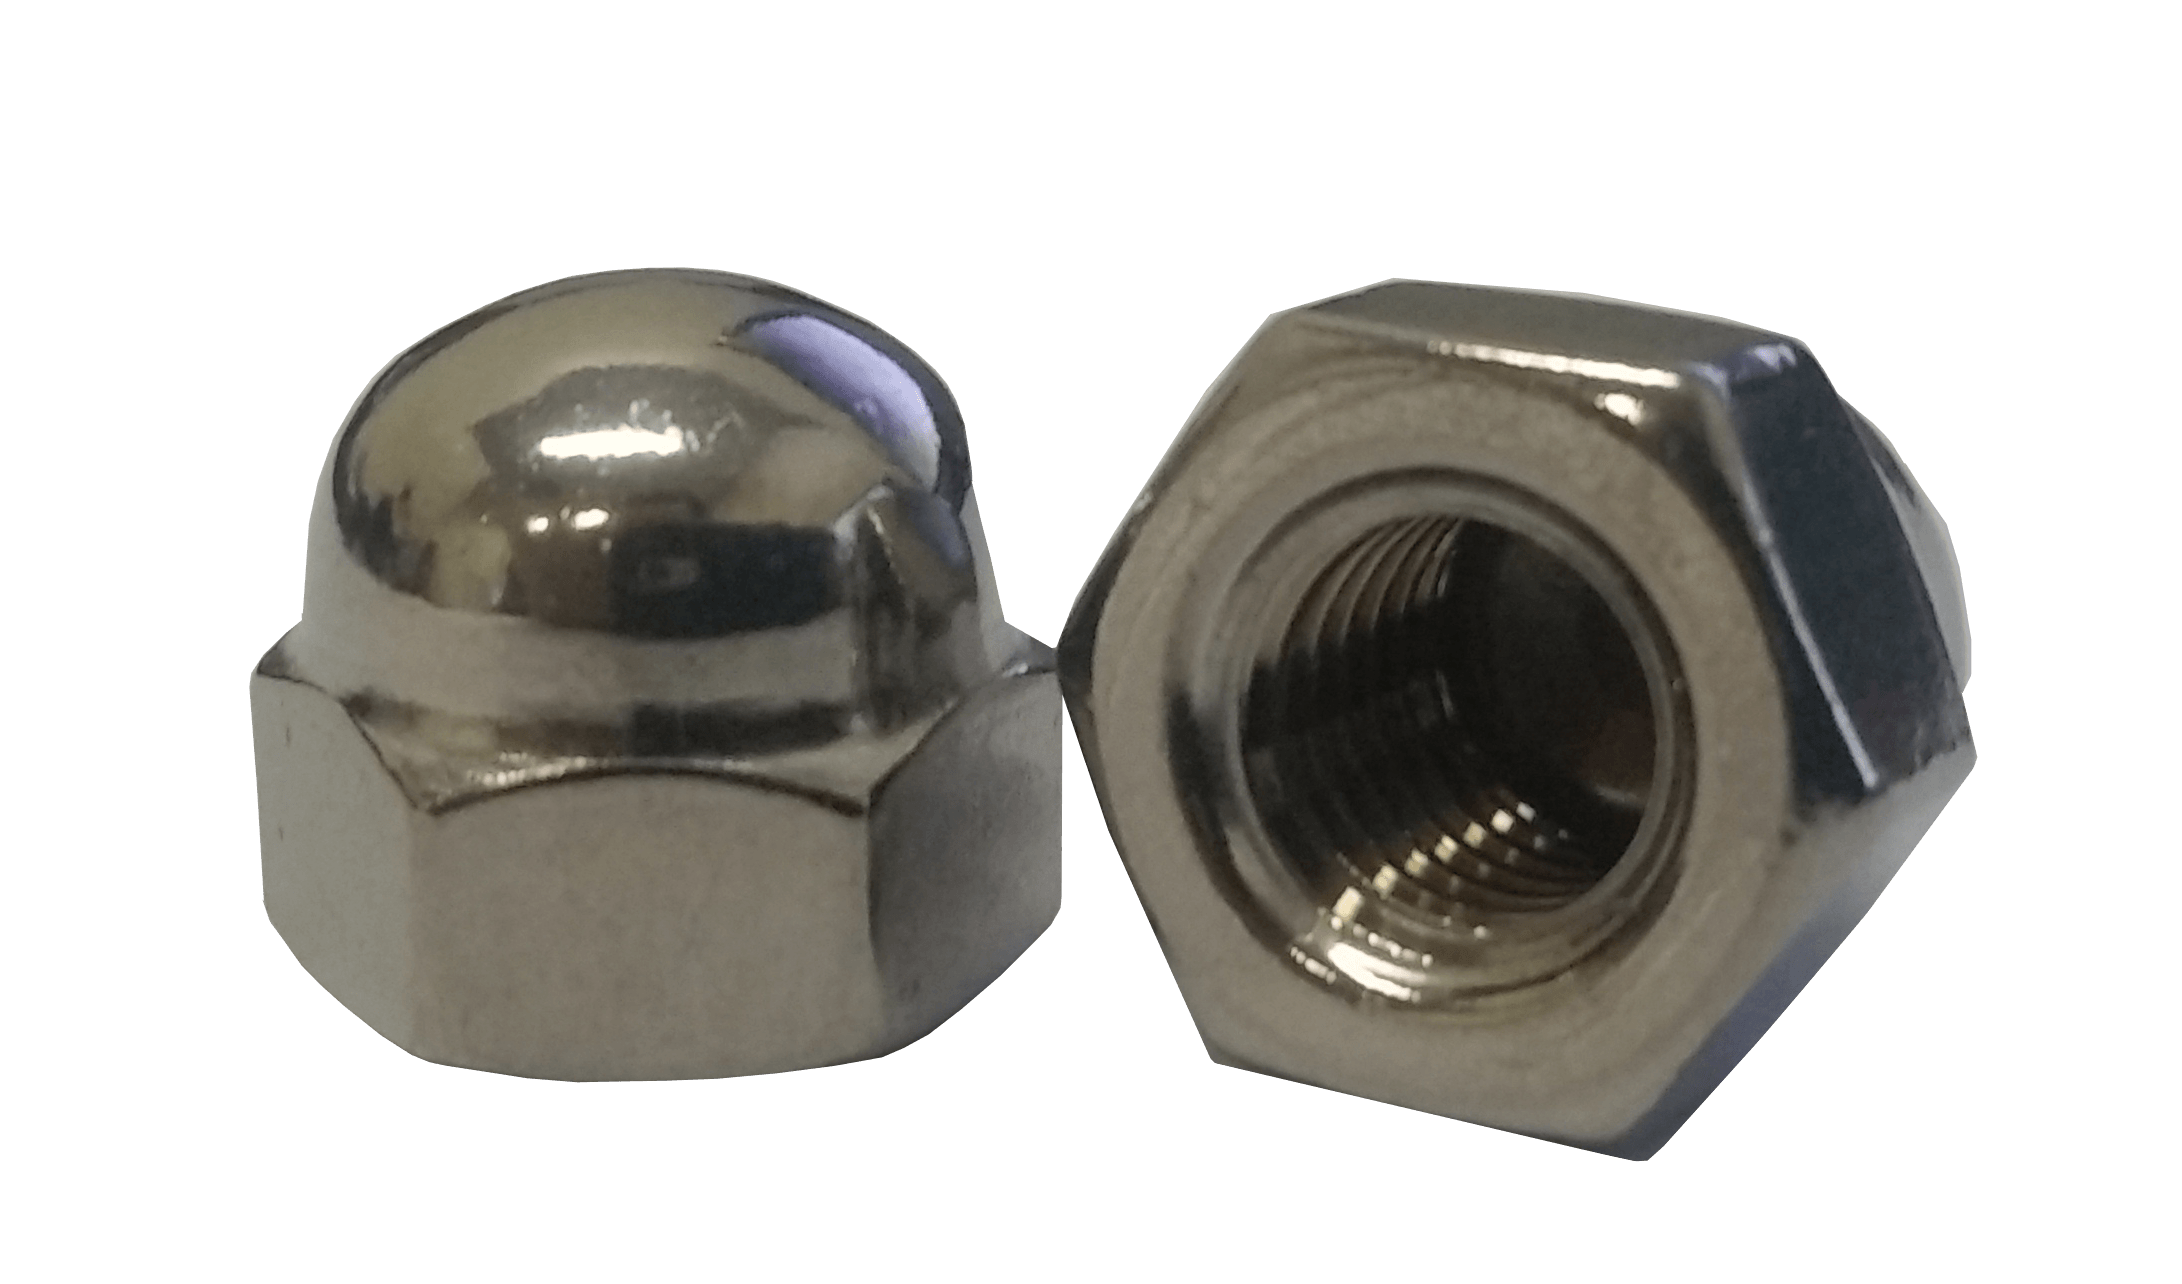 Clip connector nut. Category pacific components acorn